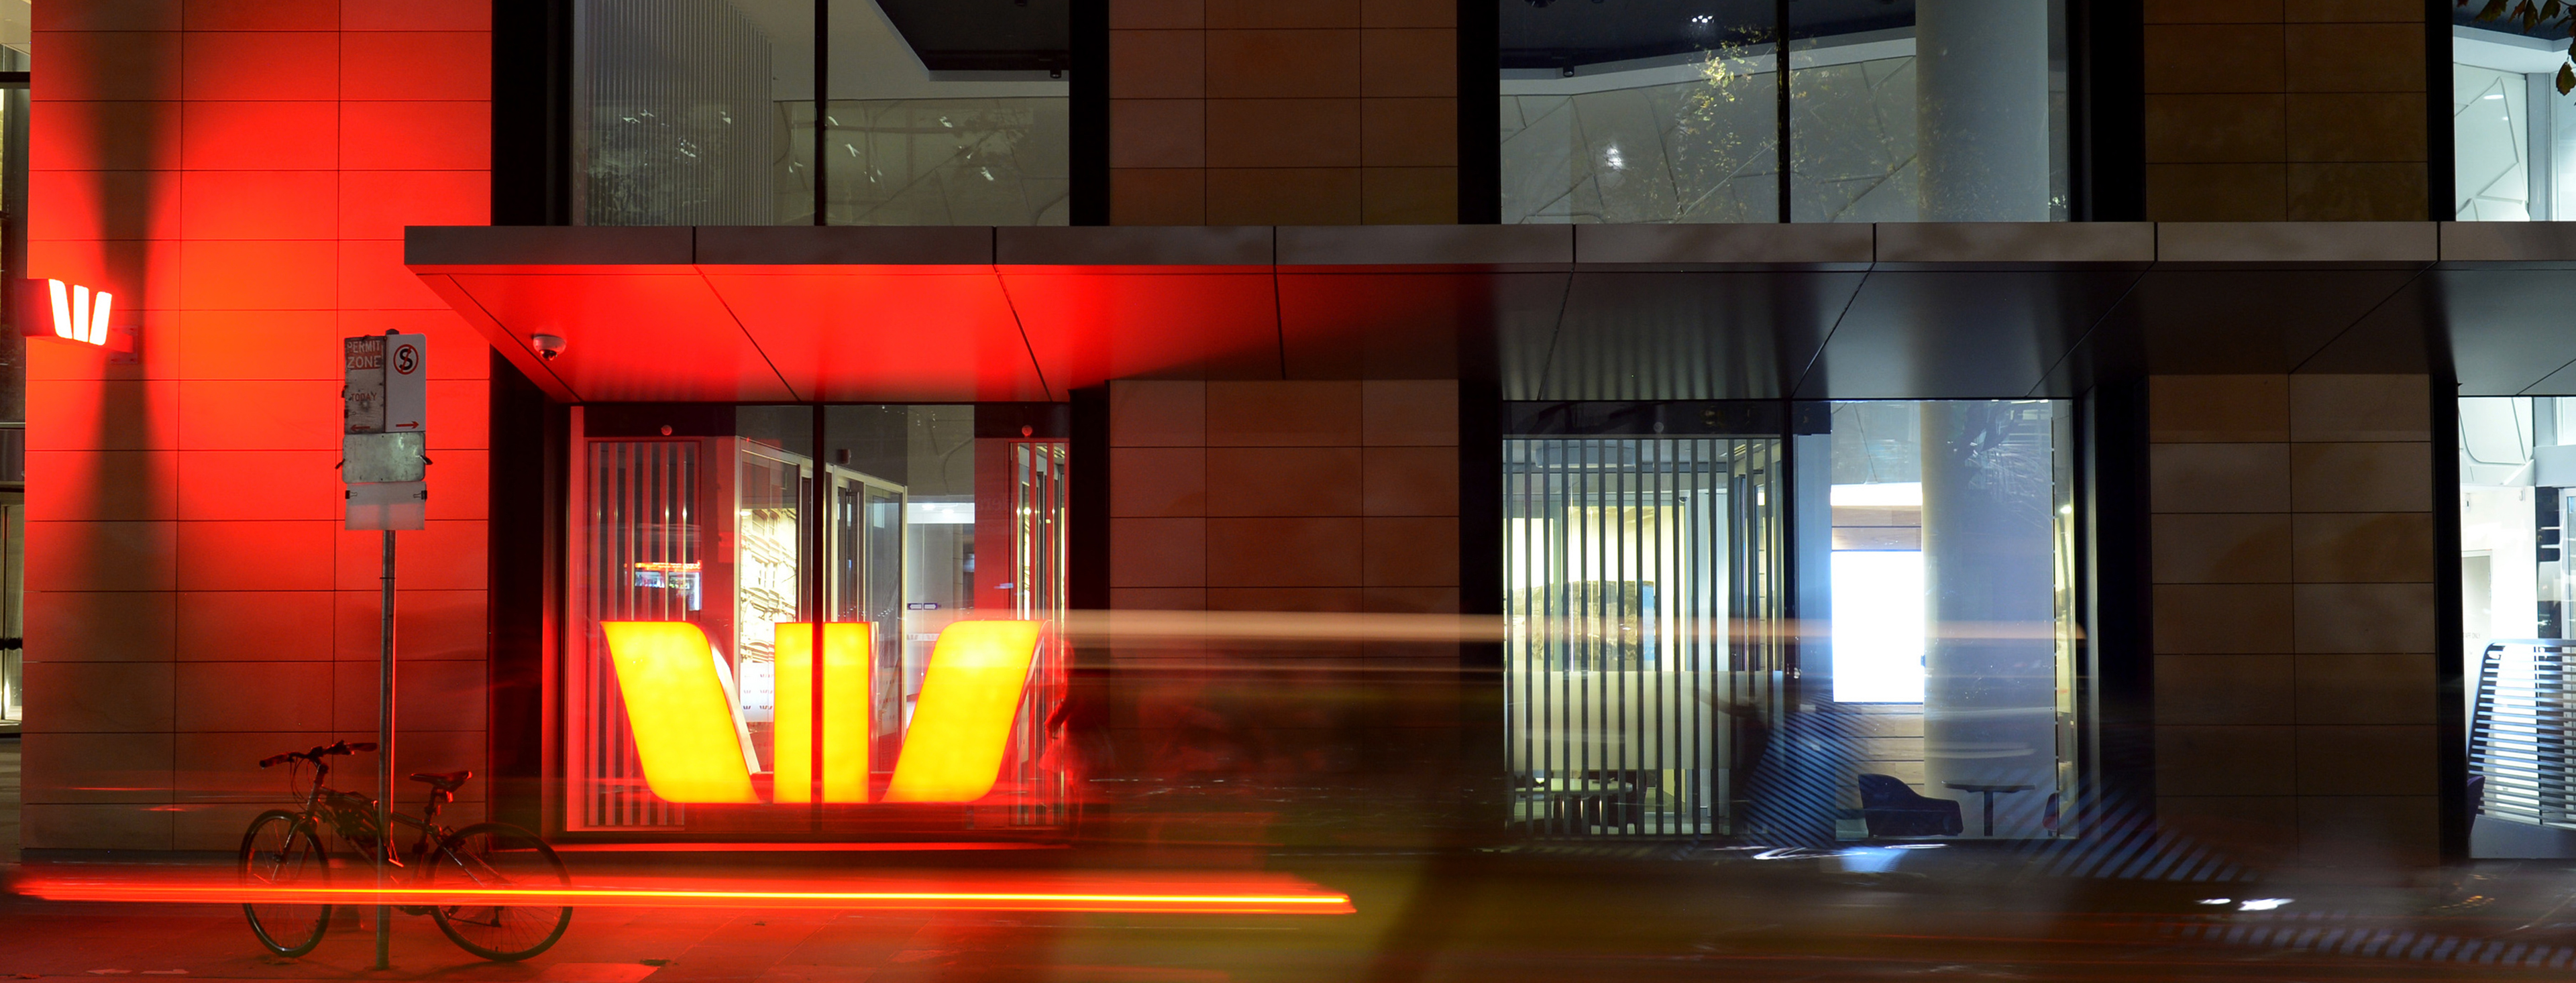 General Images Of Westpac Bank, ANZ Bank and National Australia Bank Ahead Of Earnings